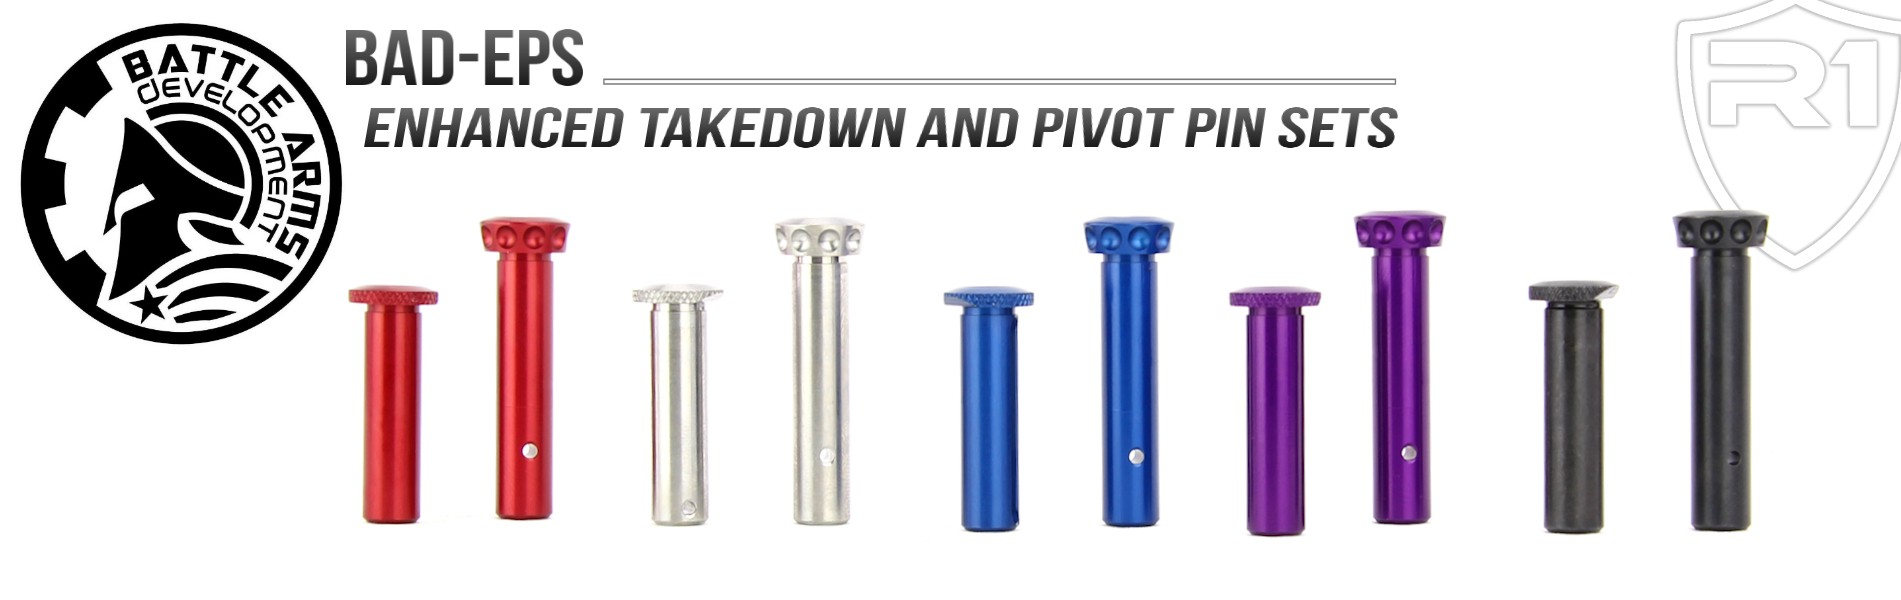 Battle Arms Development AR-15 BAD-EPS Enhanced Takedown and Pivot Pin Set  | Redcon1 Tactical